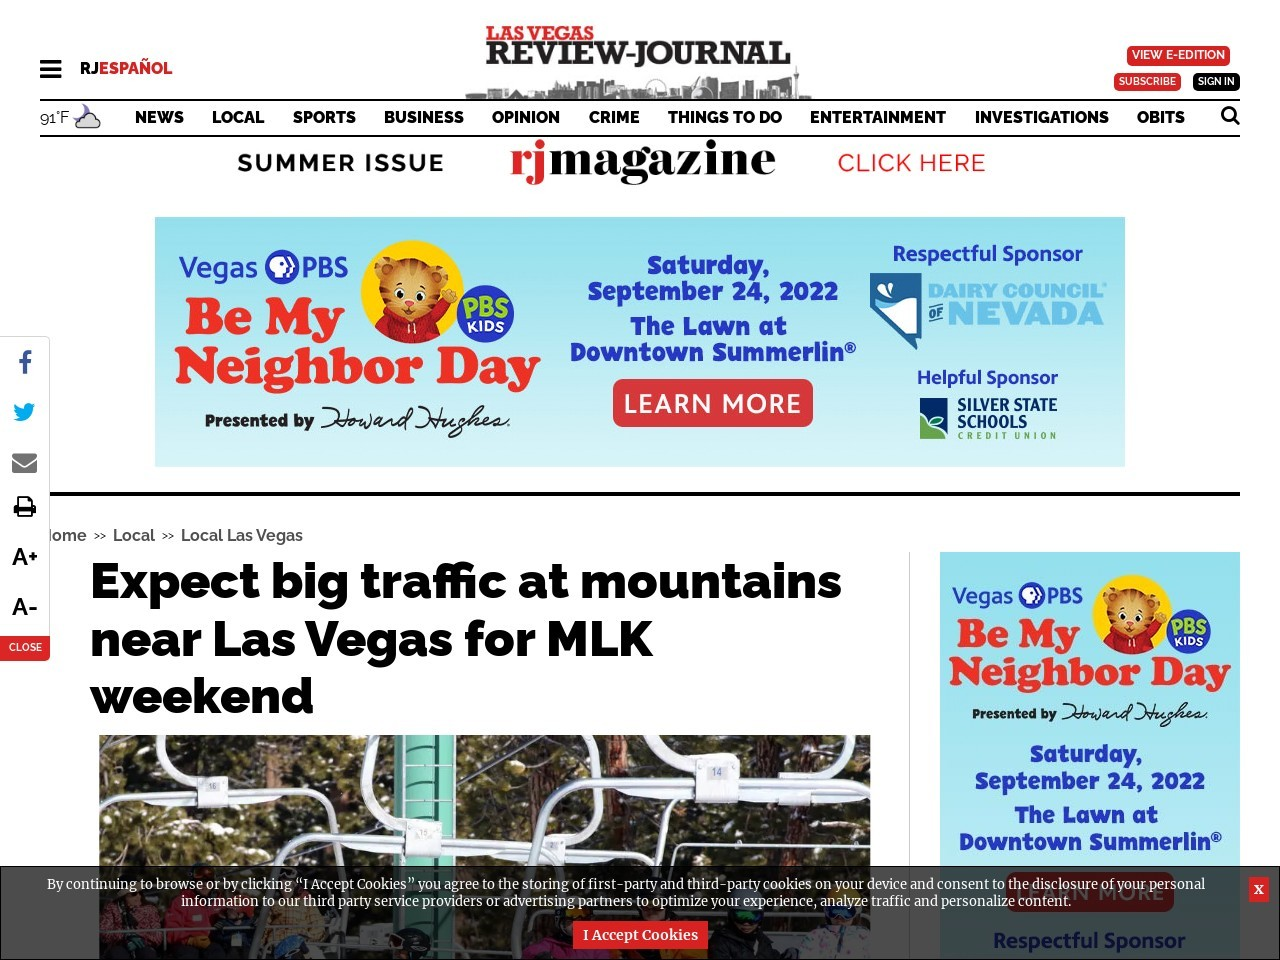 Expect big traffic at mountains near Las Vegas for MLK weekend